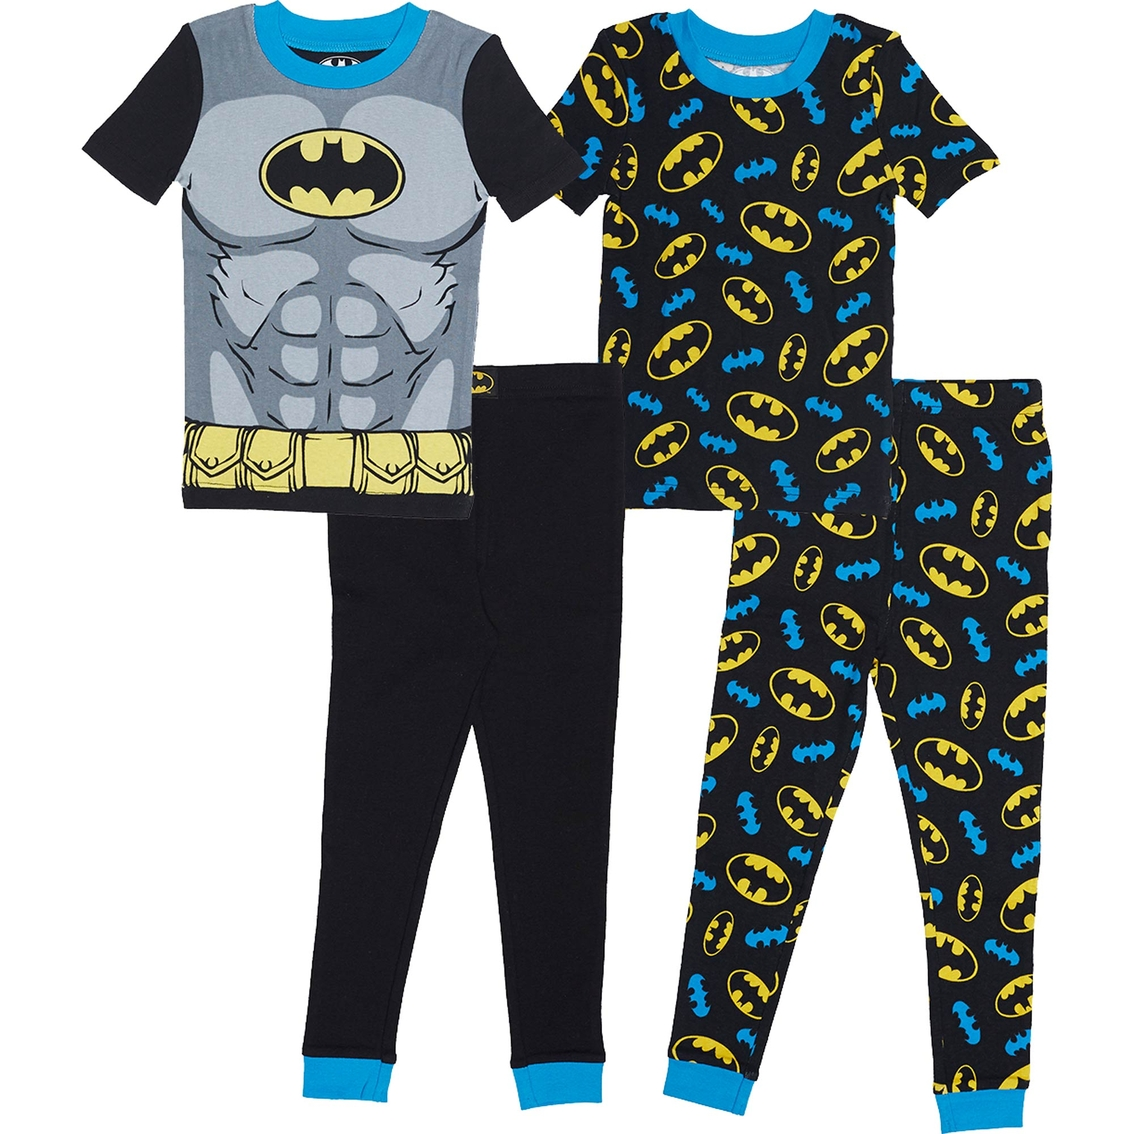 Batman Pajamas. Showing 48 of results that match your query. Search Product Result. Product - Boy's Batman 2 Piece Pajama Sleep Set (Big Boys & Little Boys) DC Comics Batman